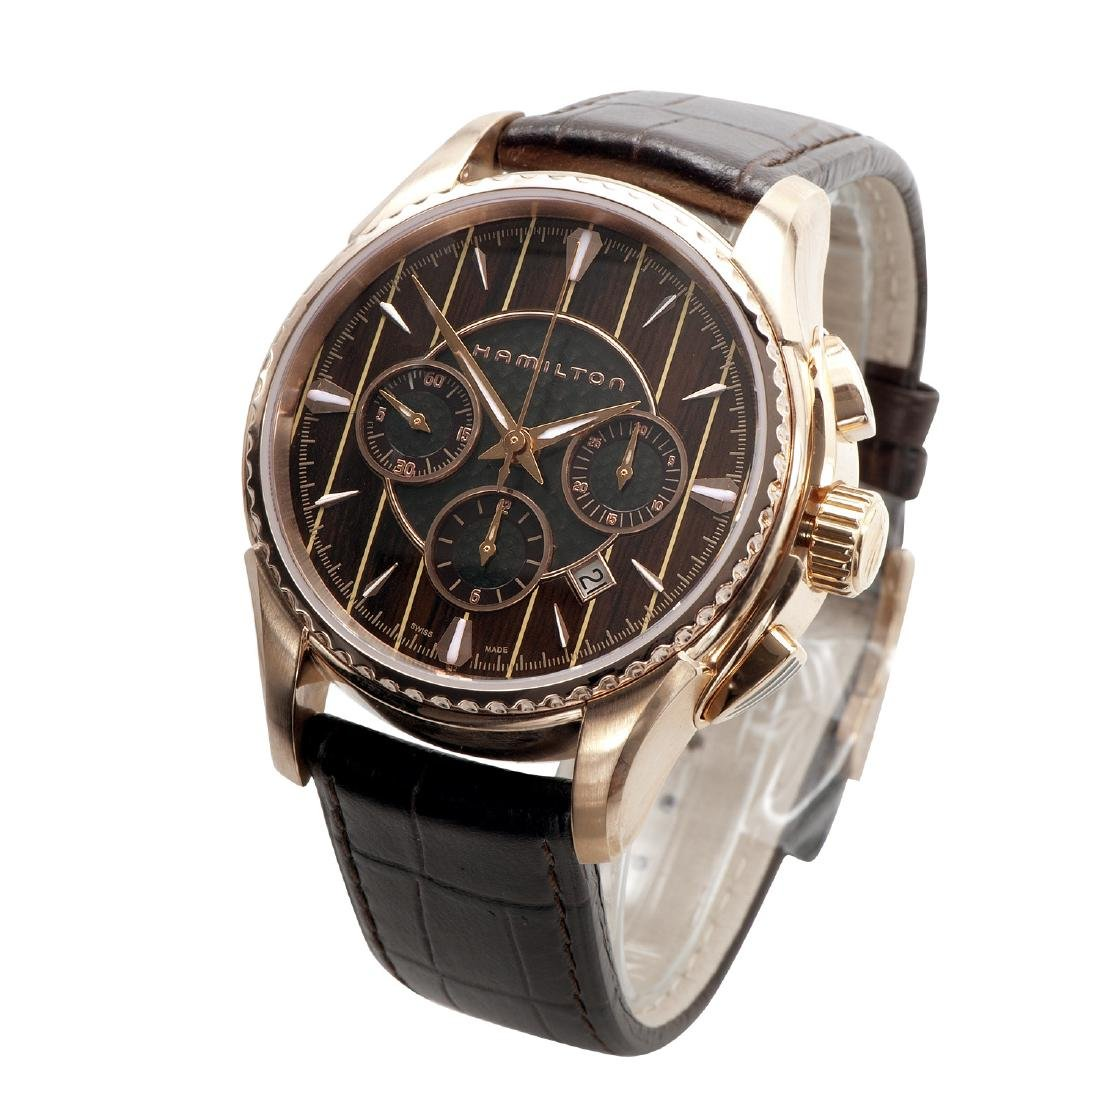 Hamilton Aquariva Automatic Chronograph Men's Watch